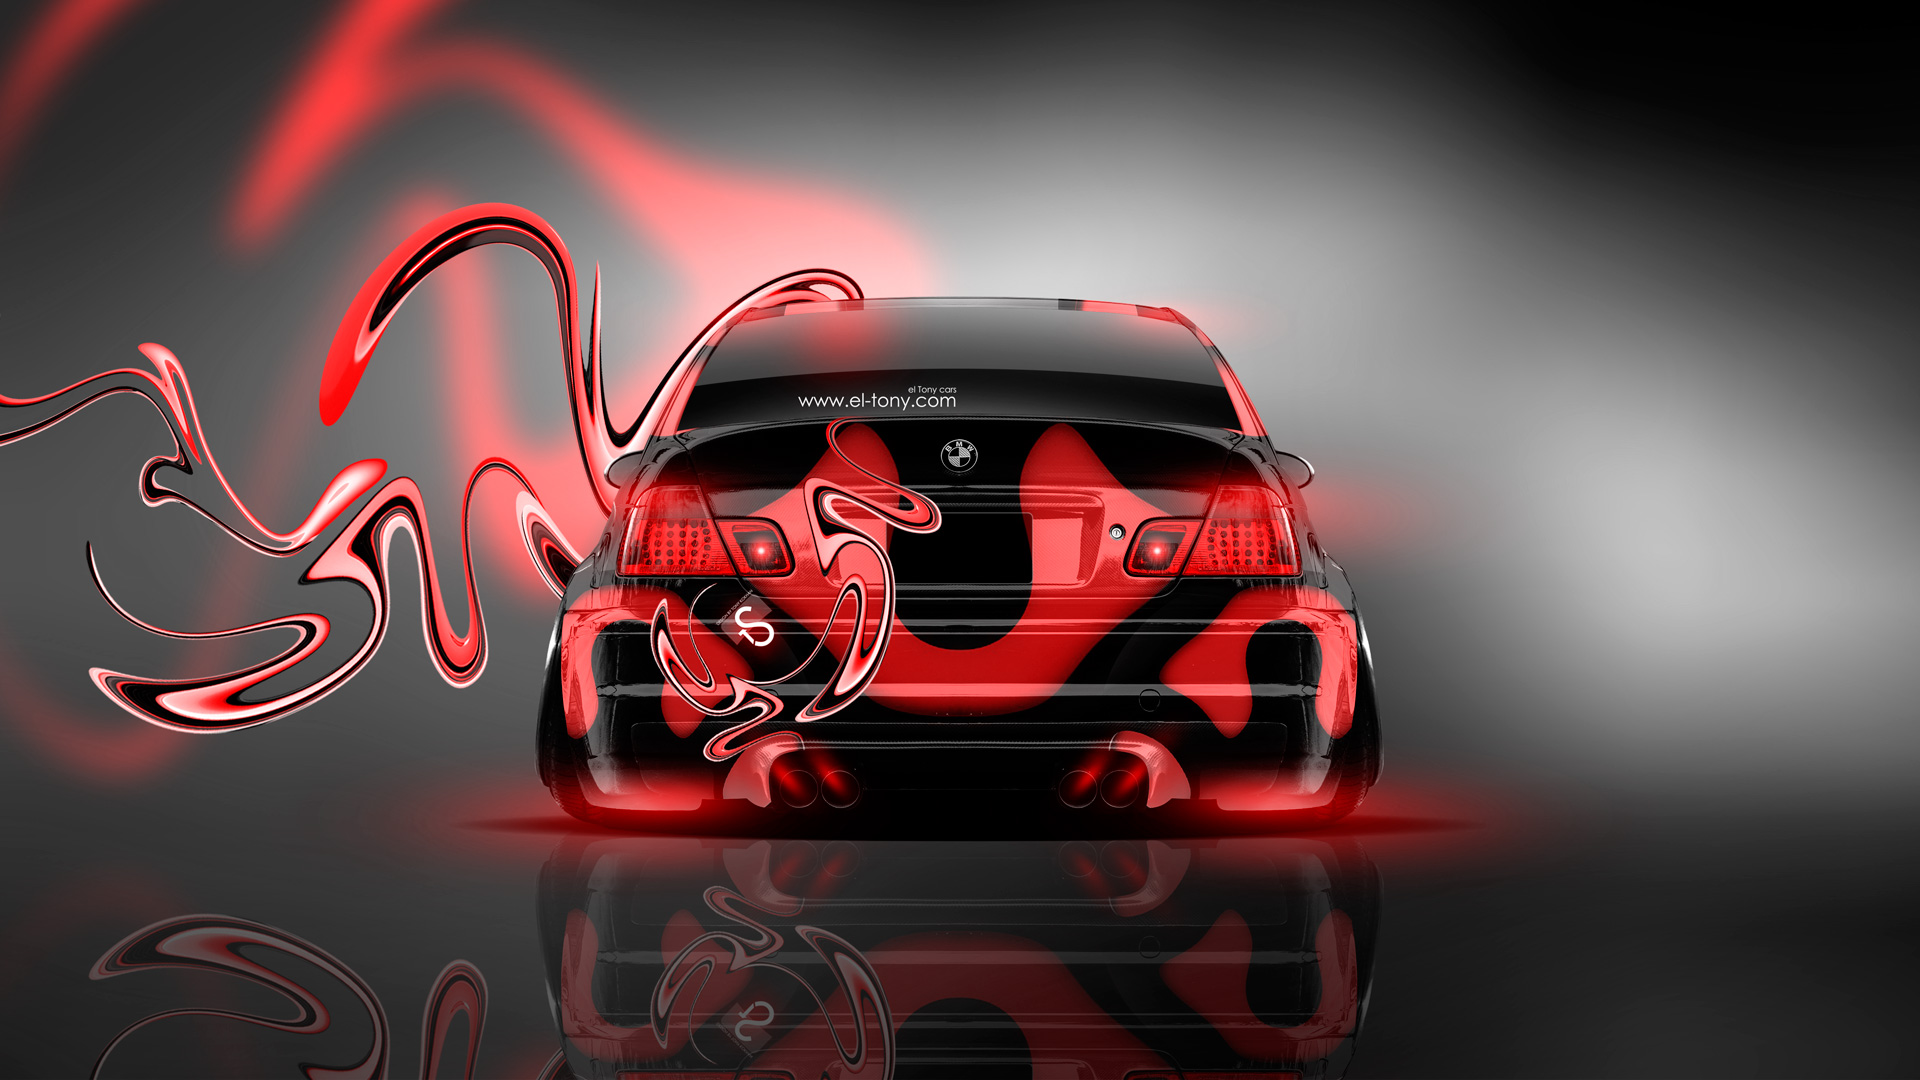 Bmw M3 Back Plastic Neon Car 2014 El Tony